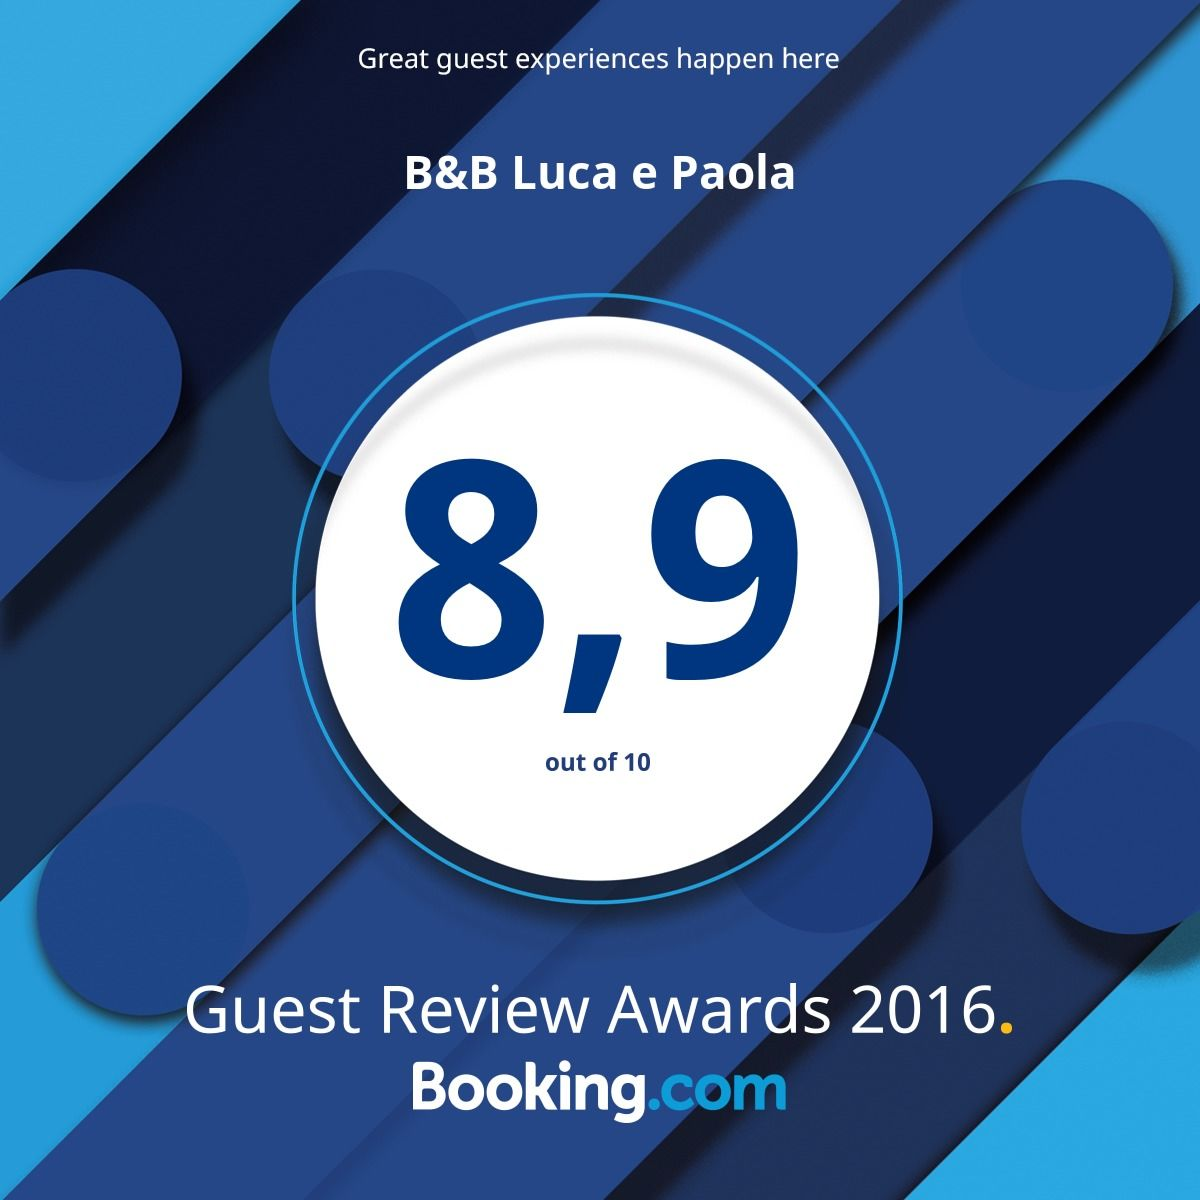 Guest Review 2016 Booking